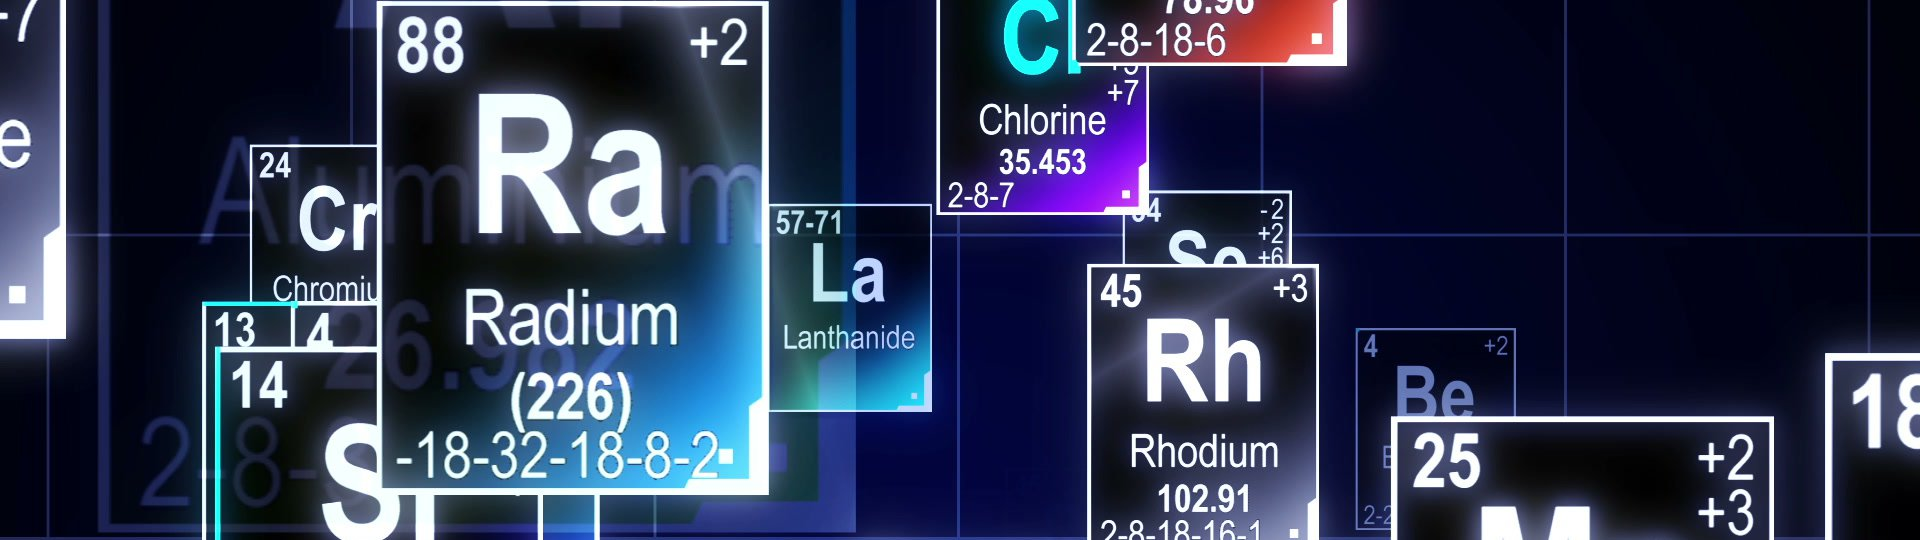 Chemistry Loop | Periodic Table of Elements - ID:18845